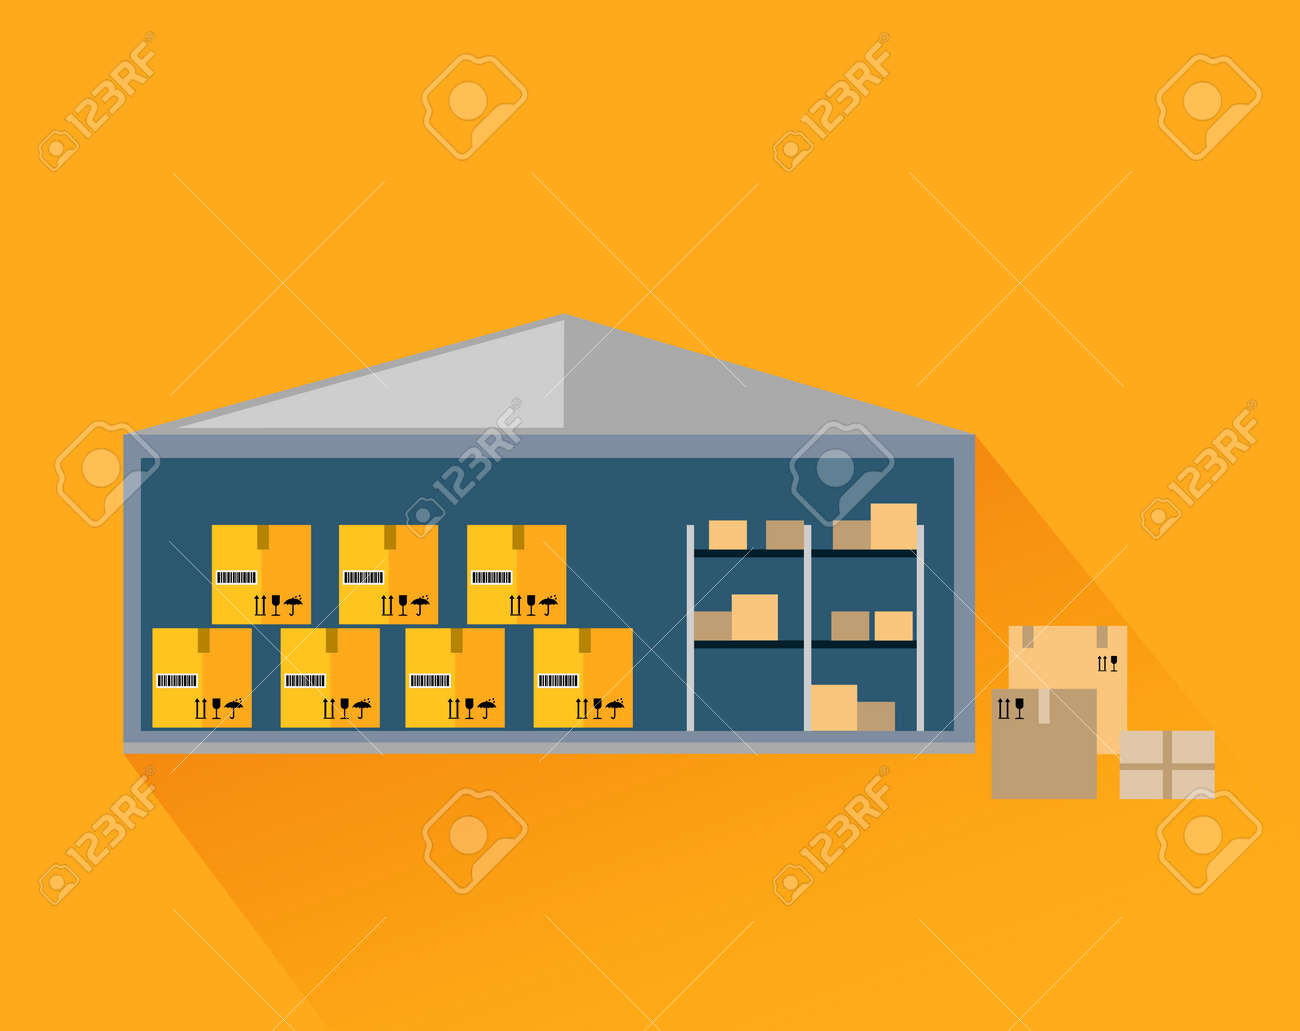 Storage Warehouse With Boxes In Cut. Storage Unit, Warehouse Interior,  Storage Boxes,